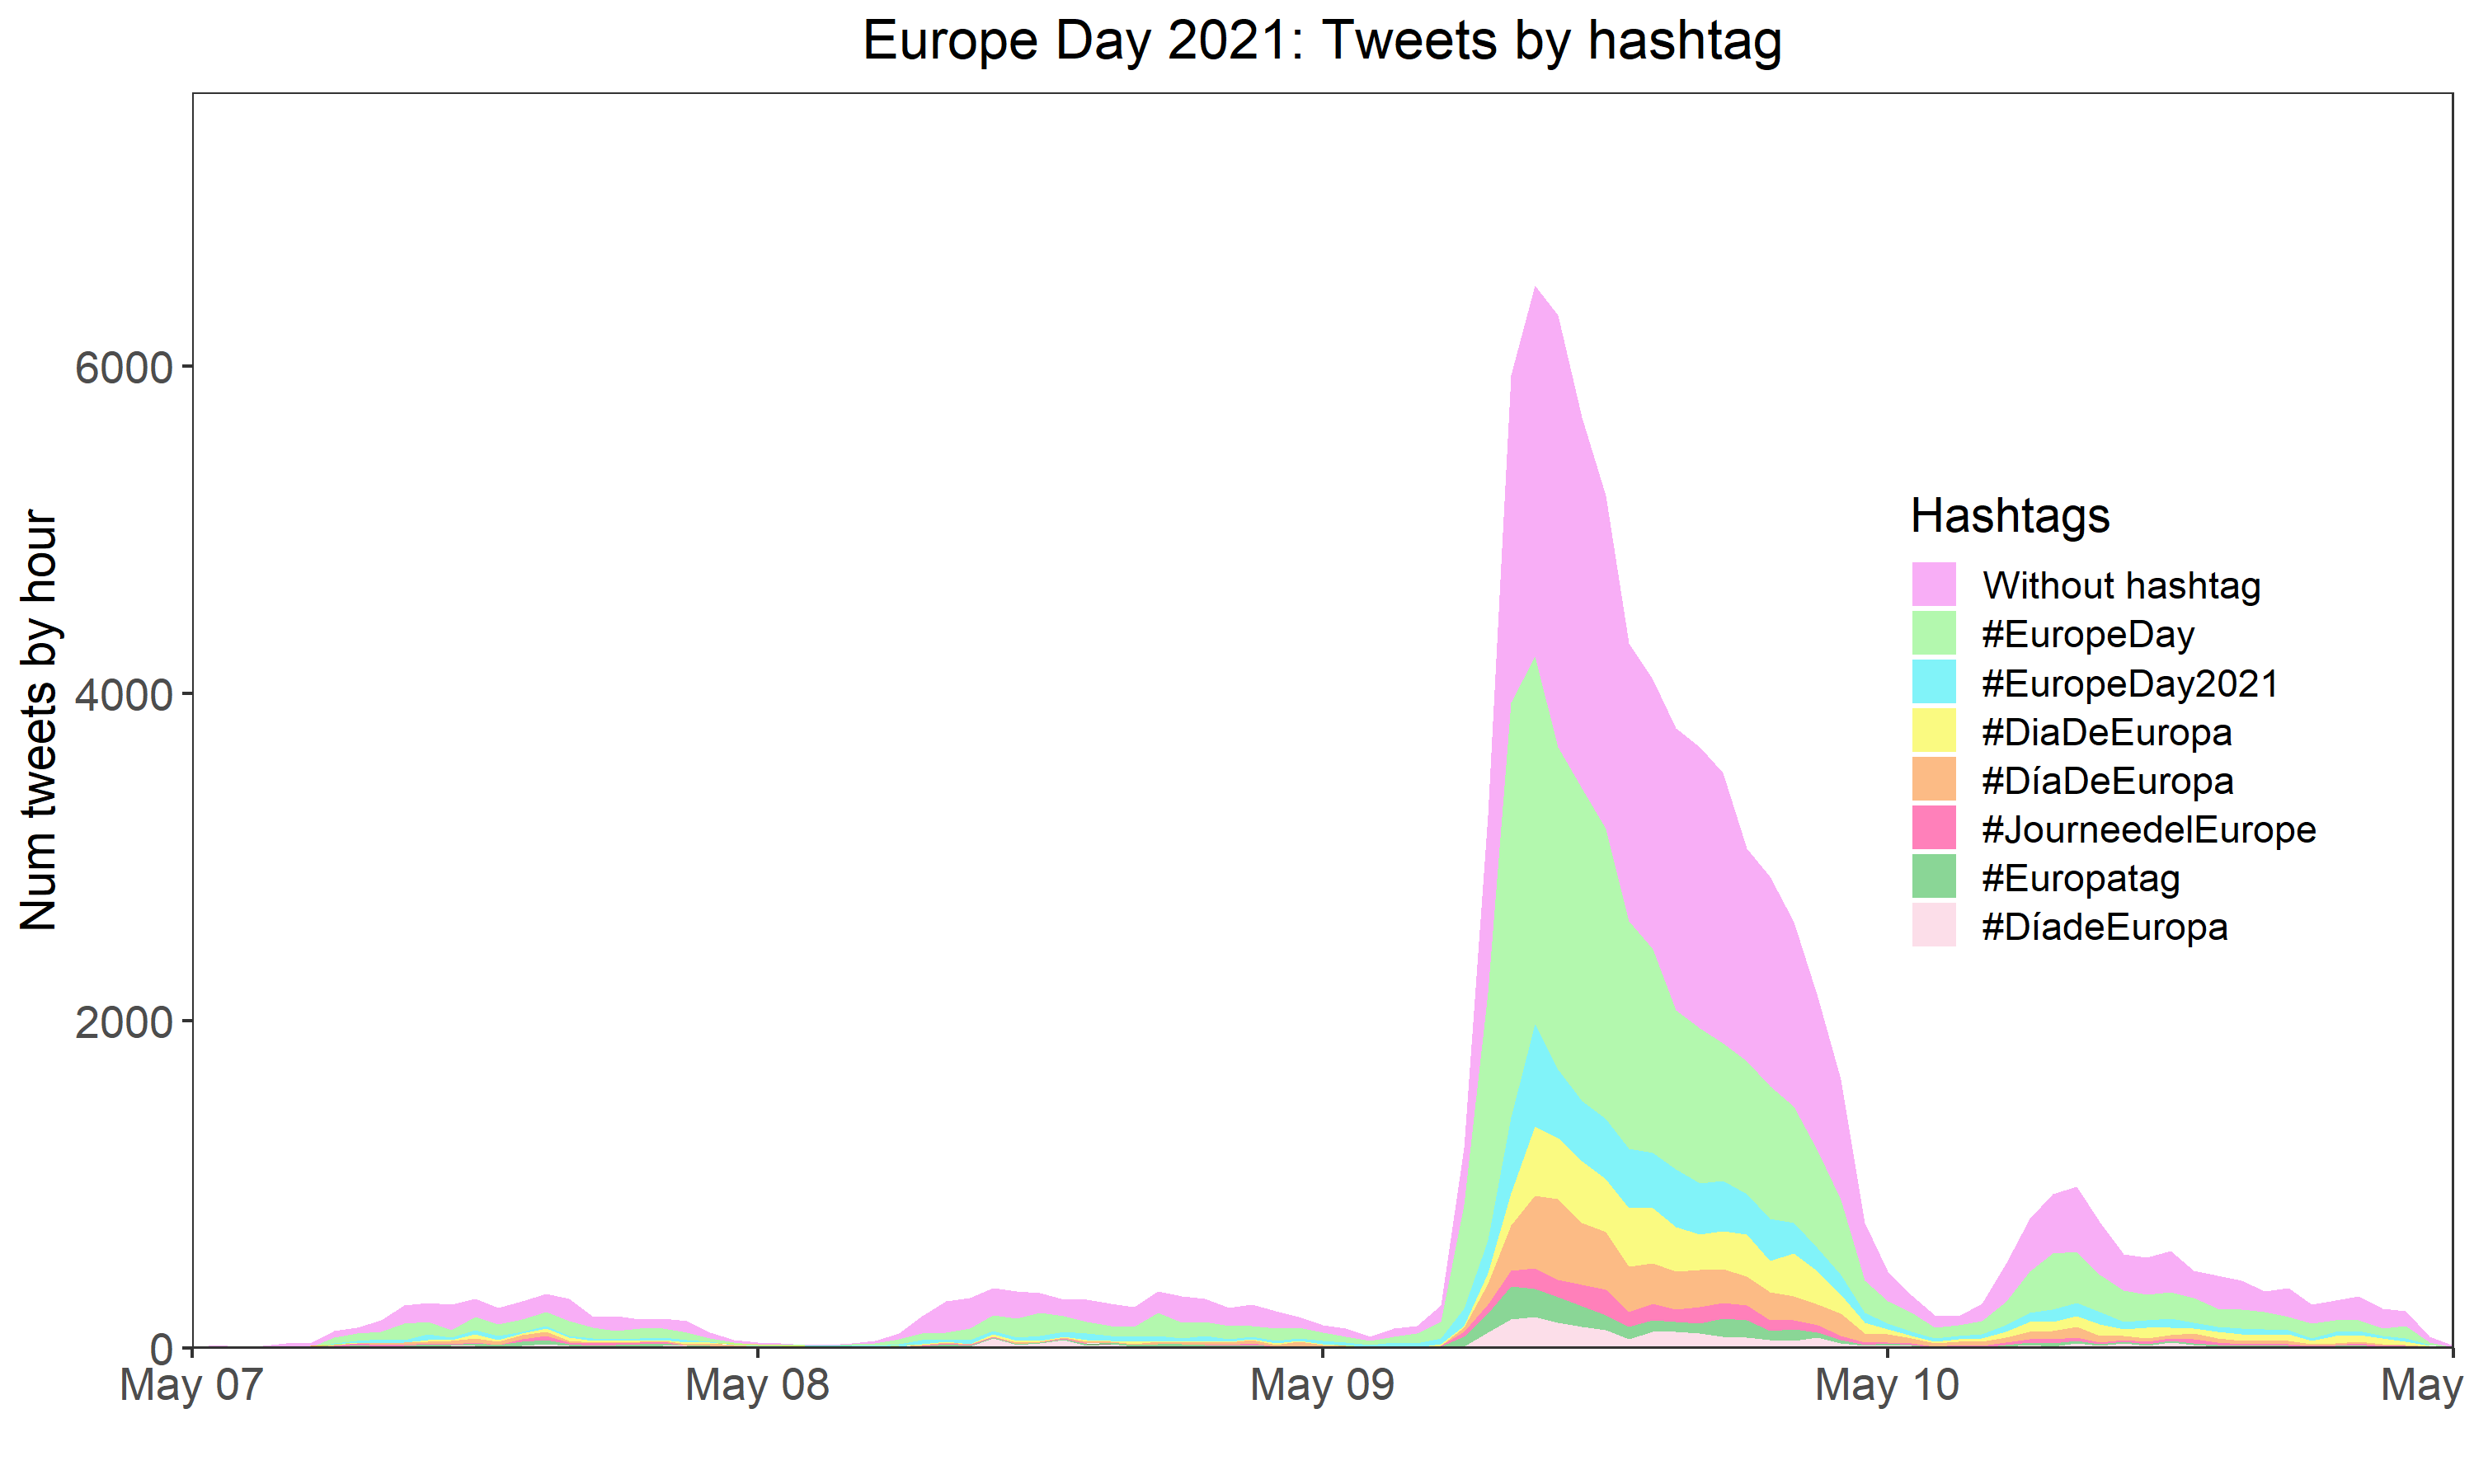 FIG. 4 PRESENCE OF HASHTAGS IN TWEETS